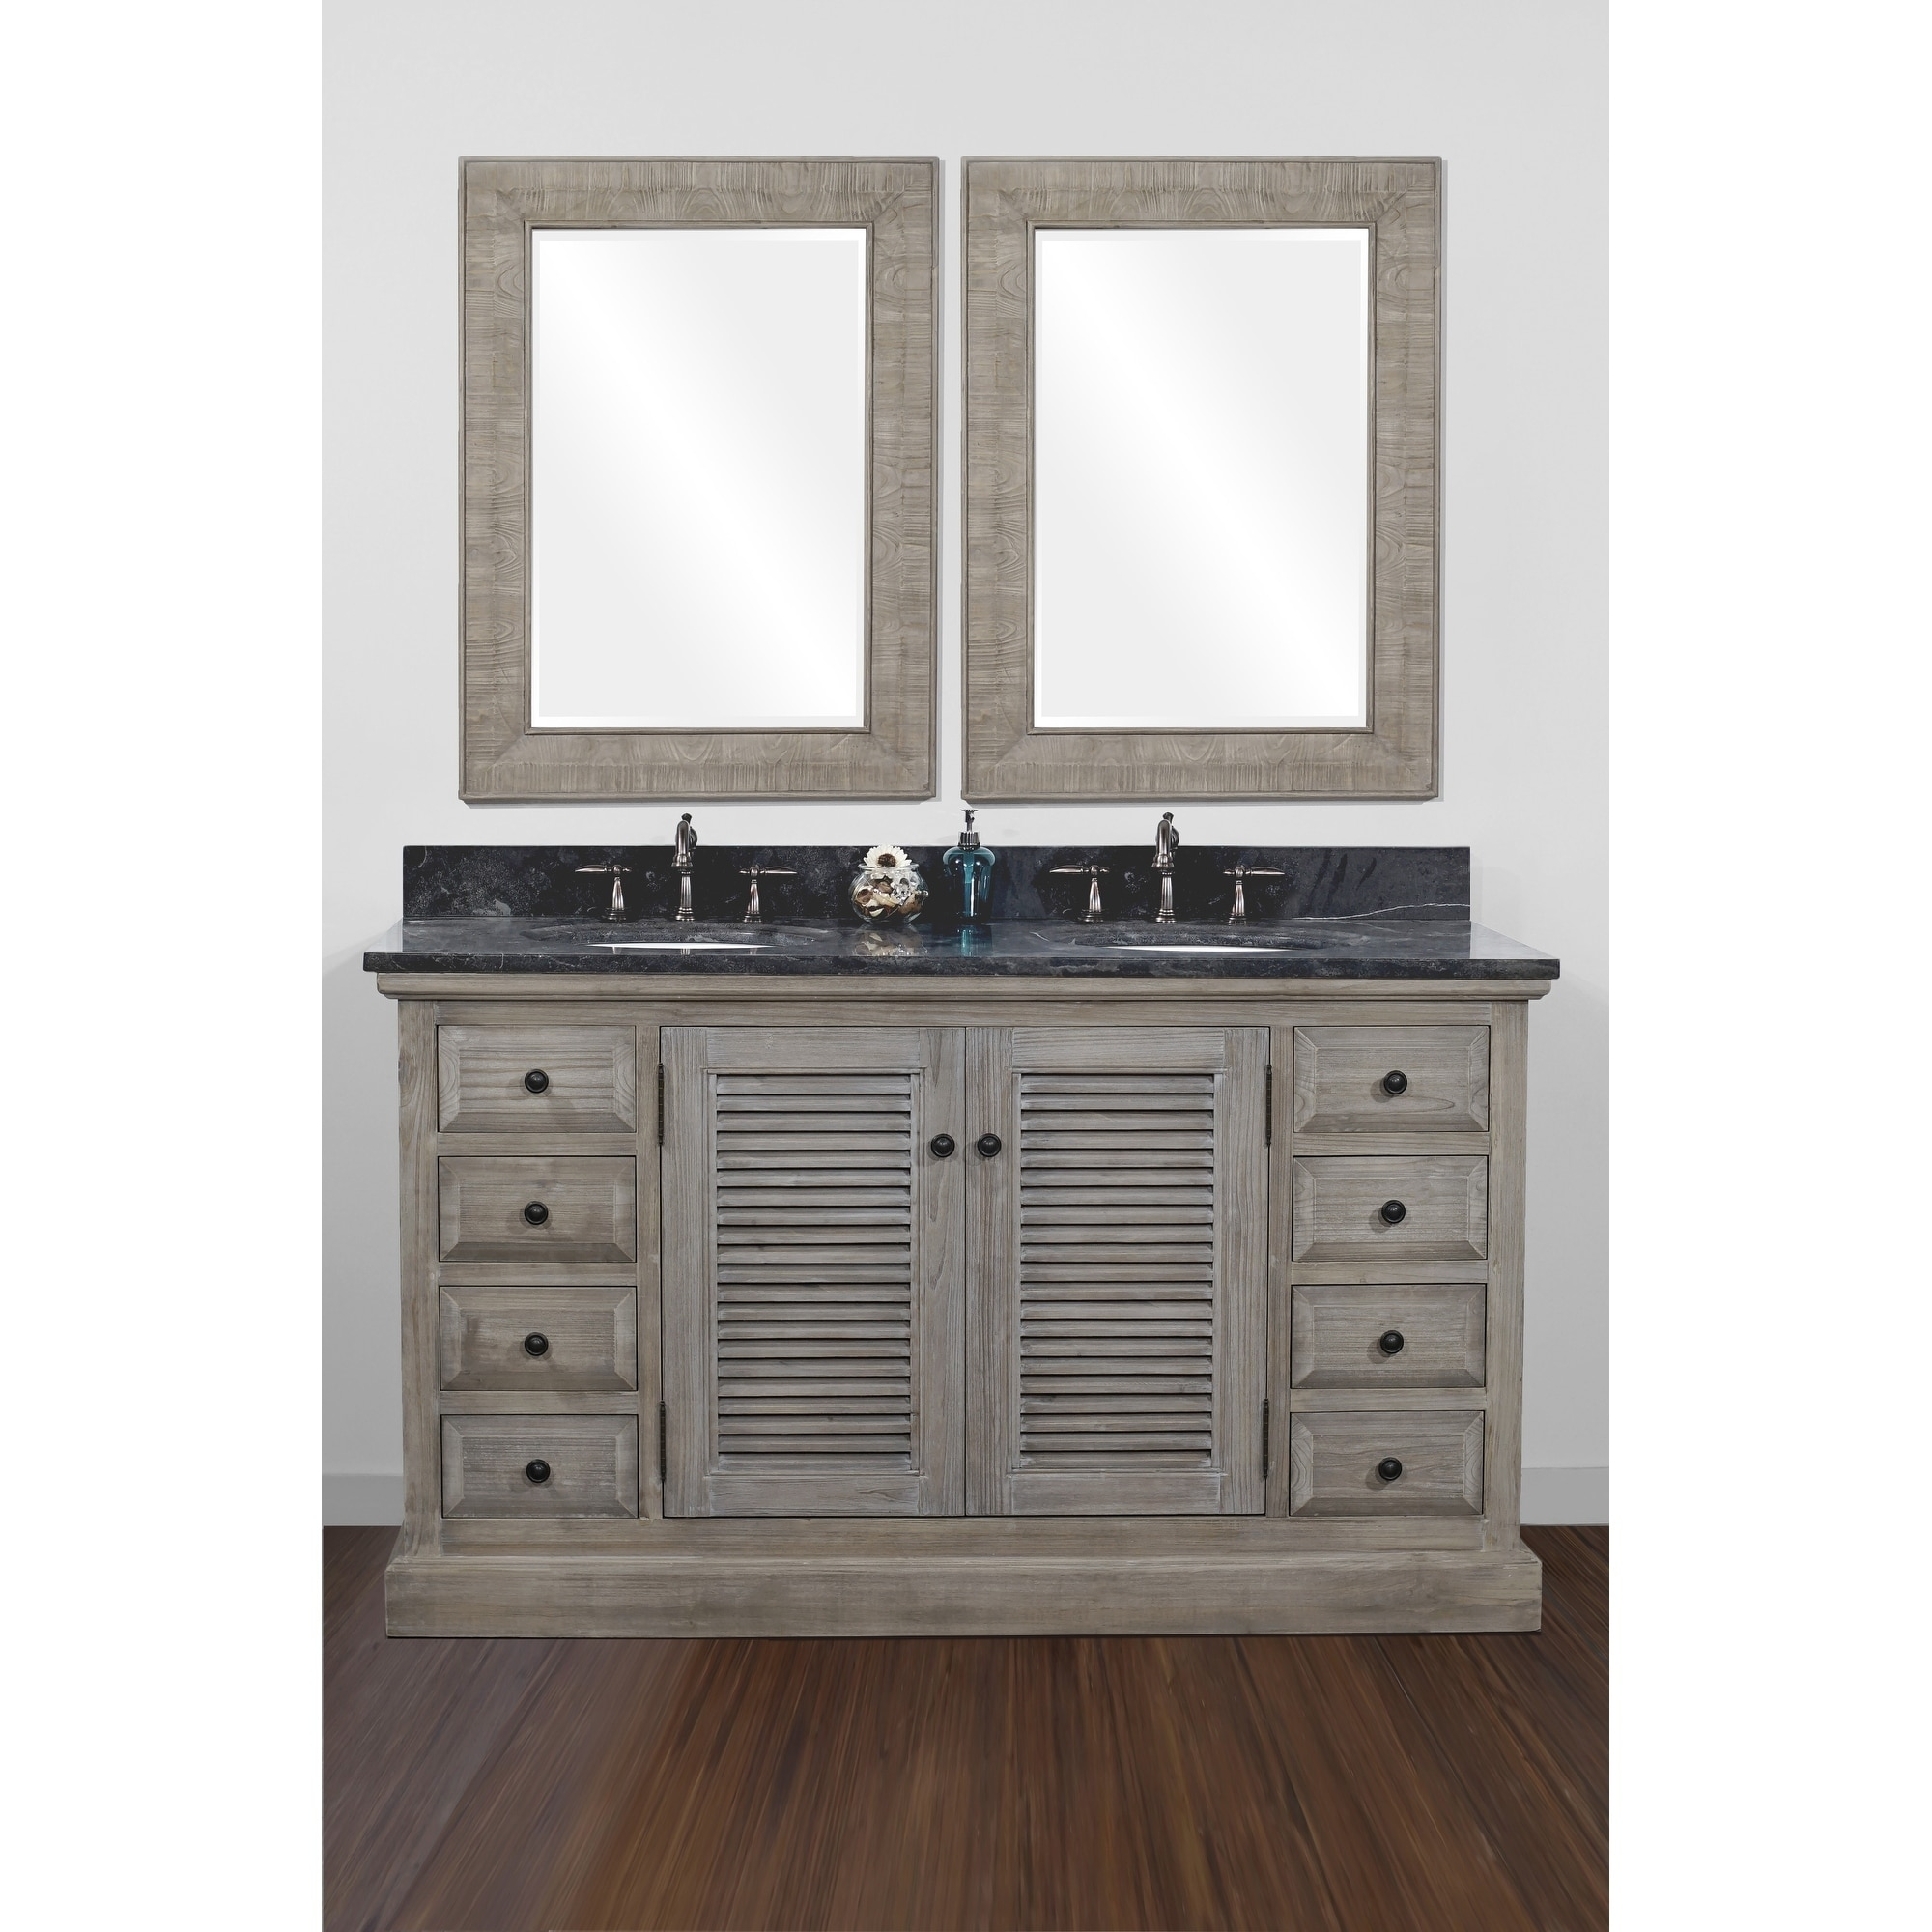 Infurniture Dark Brown Finish Wood 60-inch Double Sink Ba...